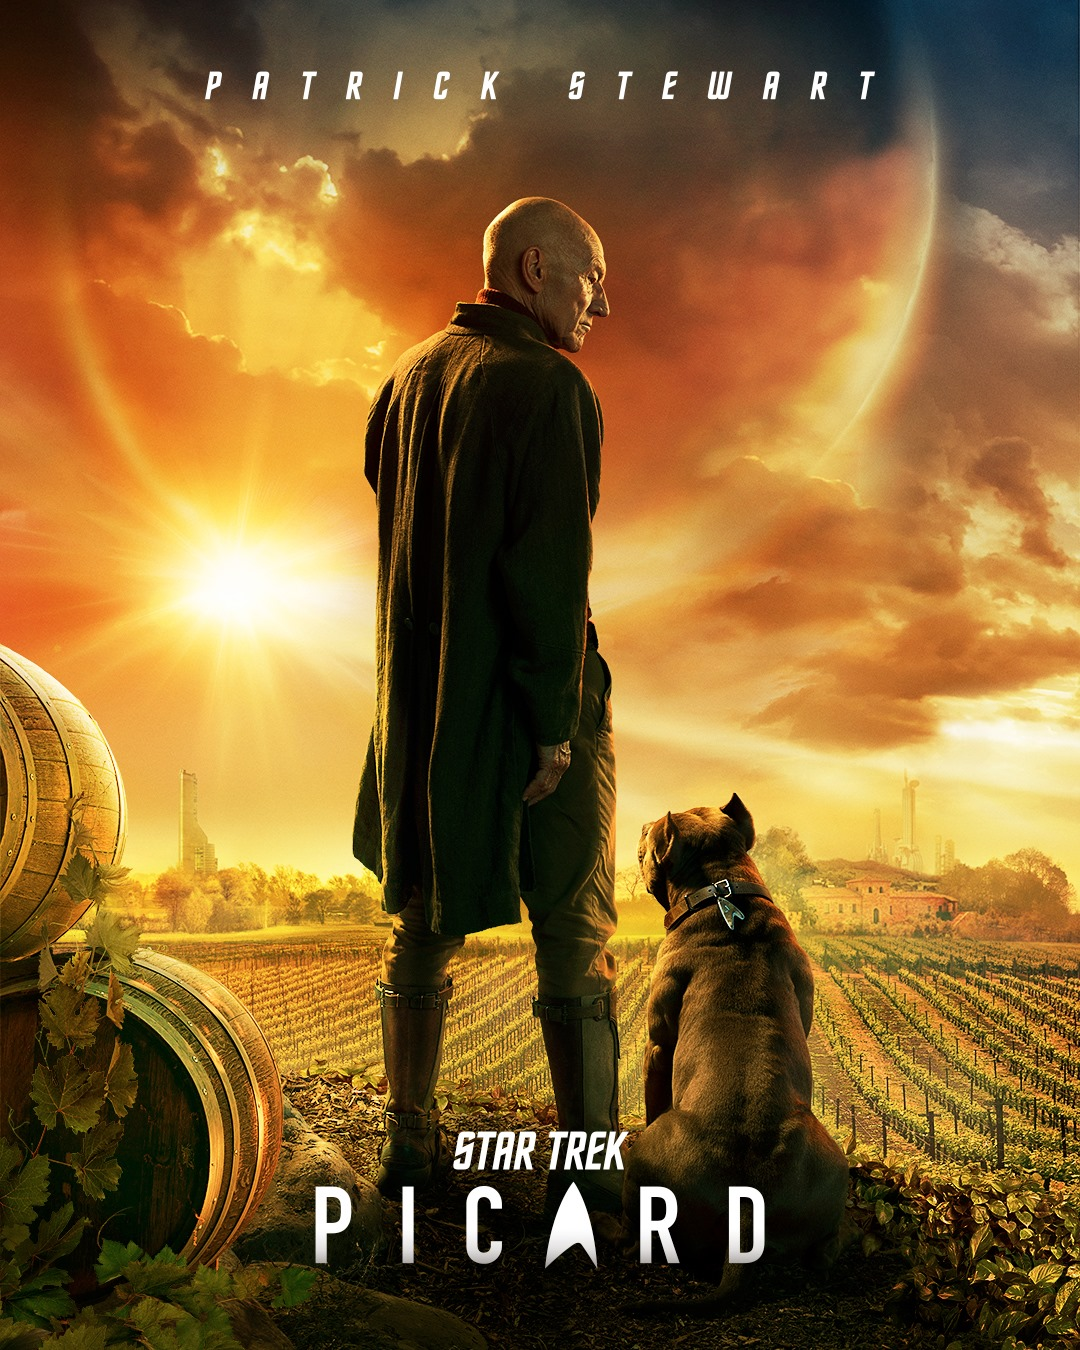 Star Trek Picard first poster